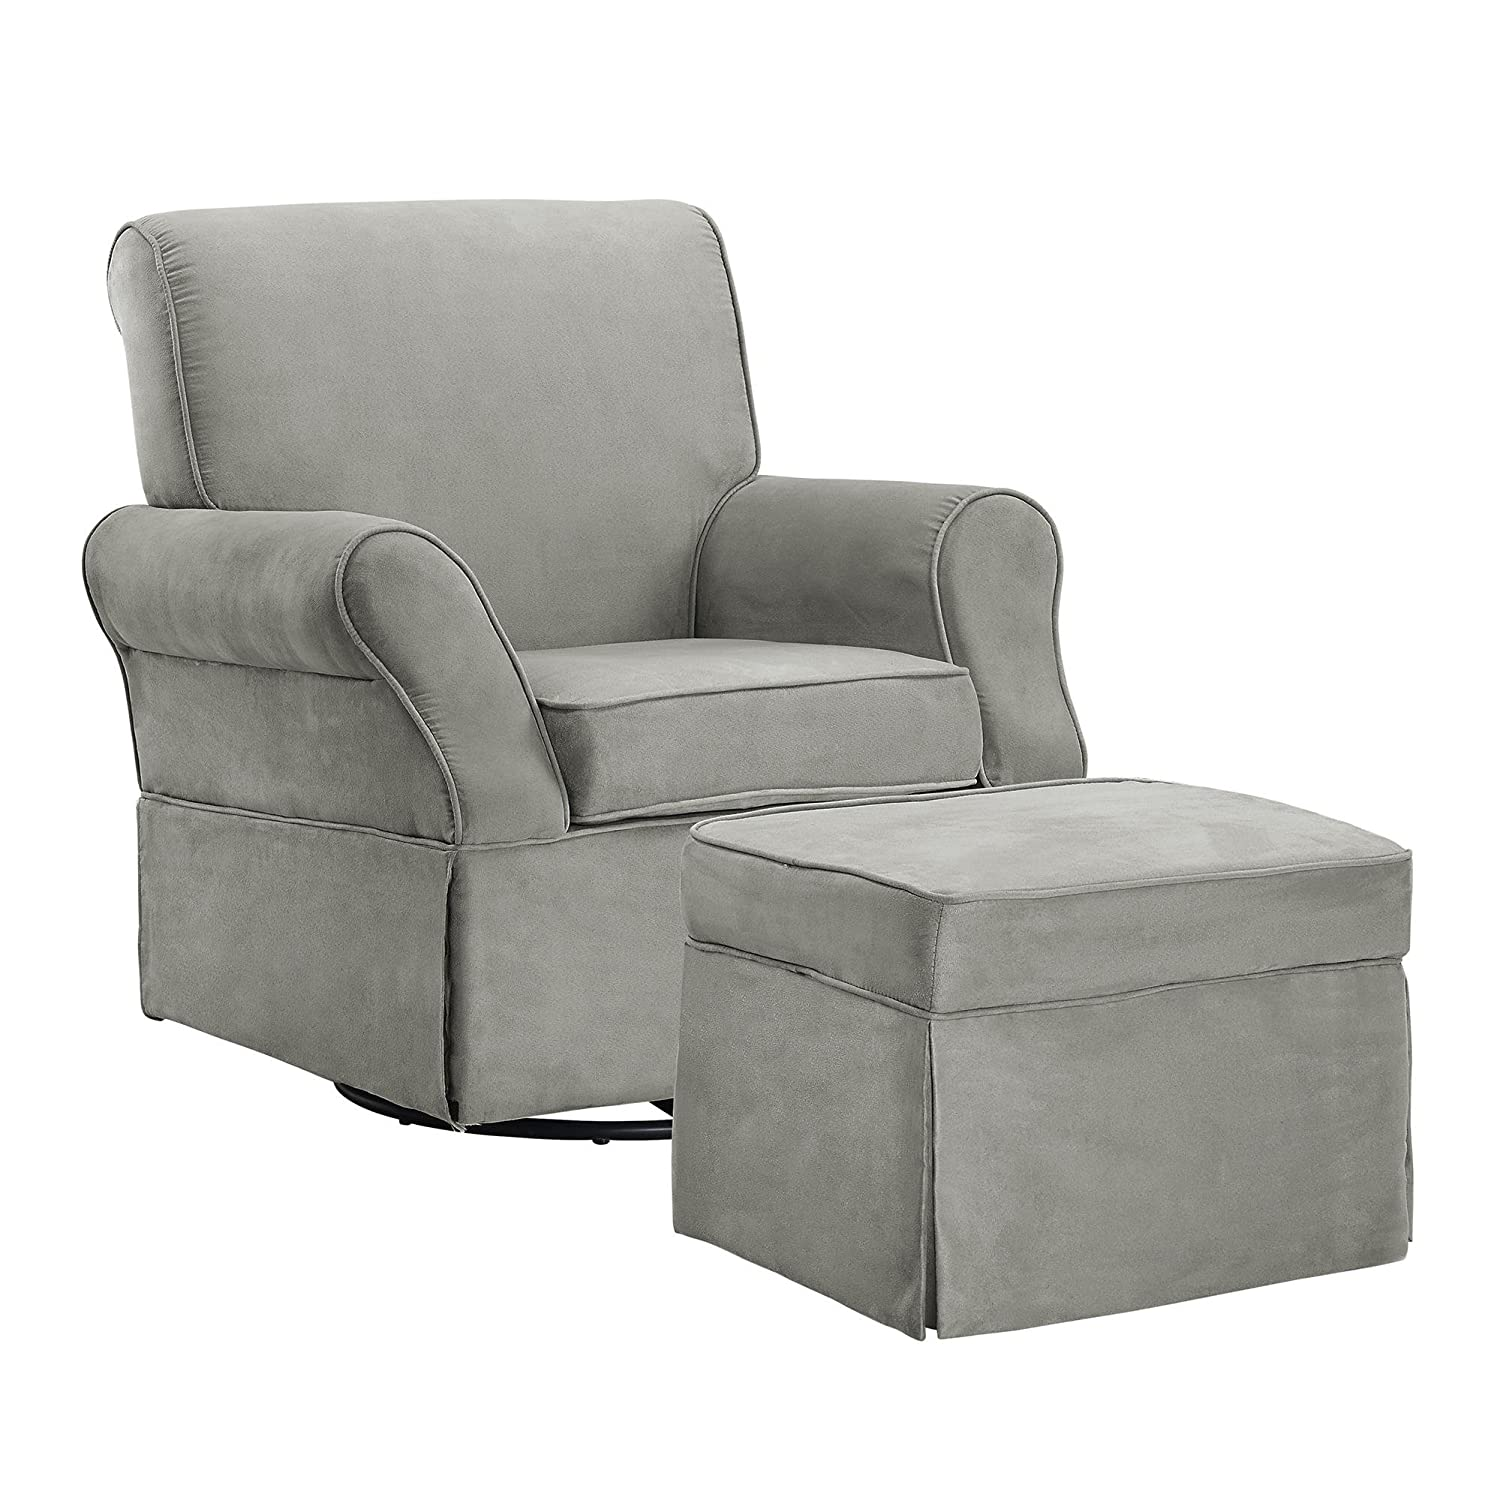 Amazon Baby Relax The Kelcie Nursery Swivel Glider Chair and